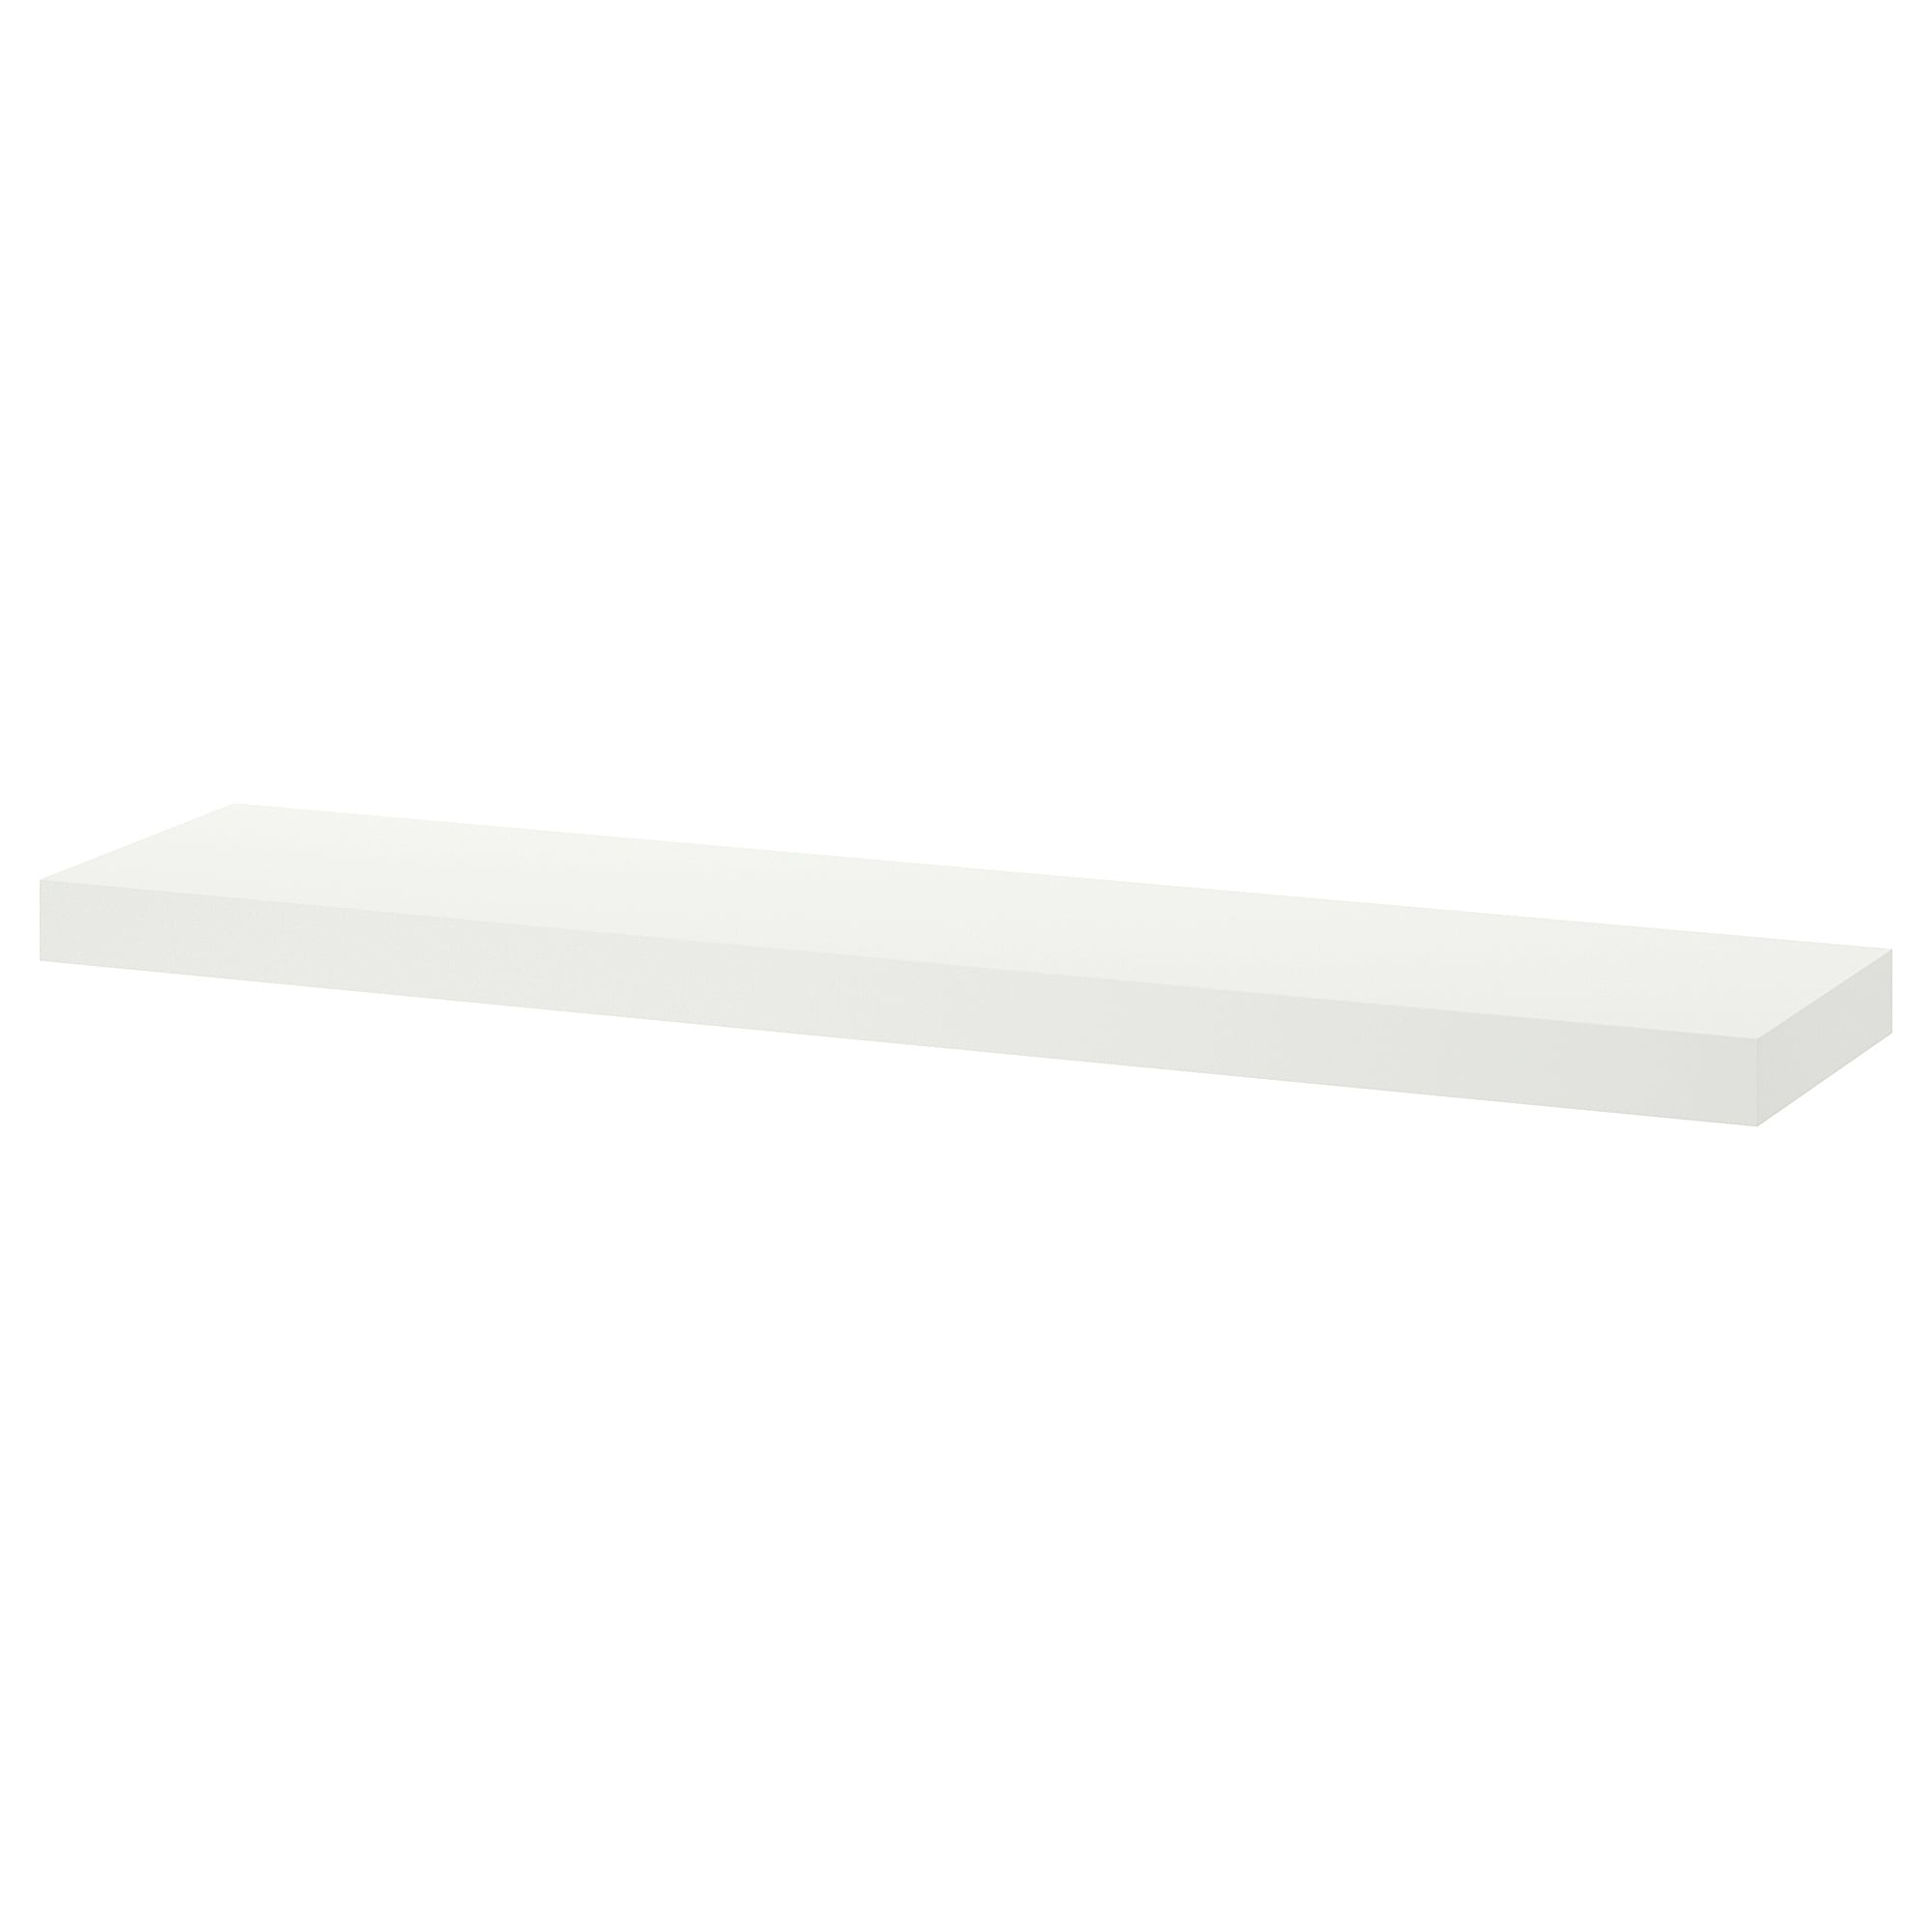 Lack Estante De Pared Blanco Ikea